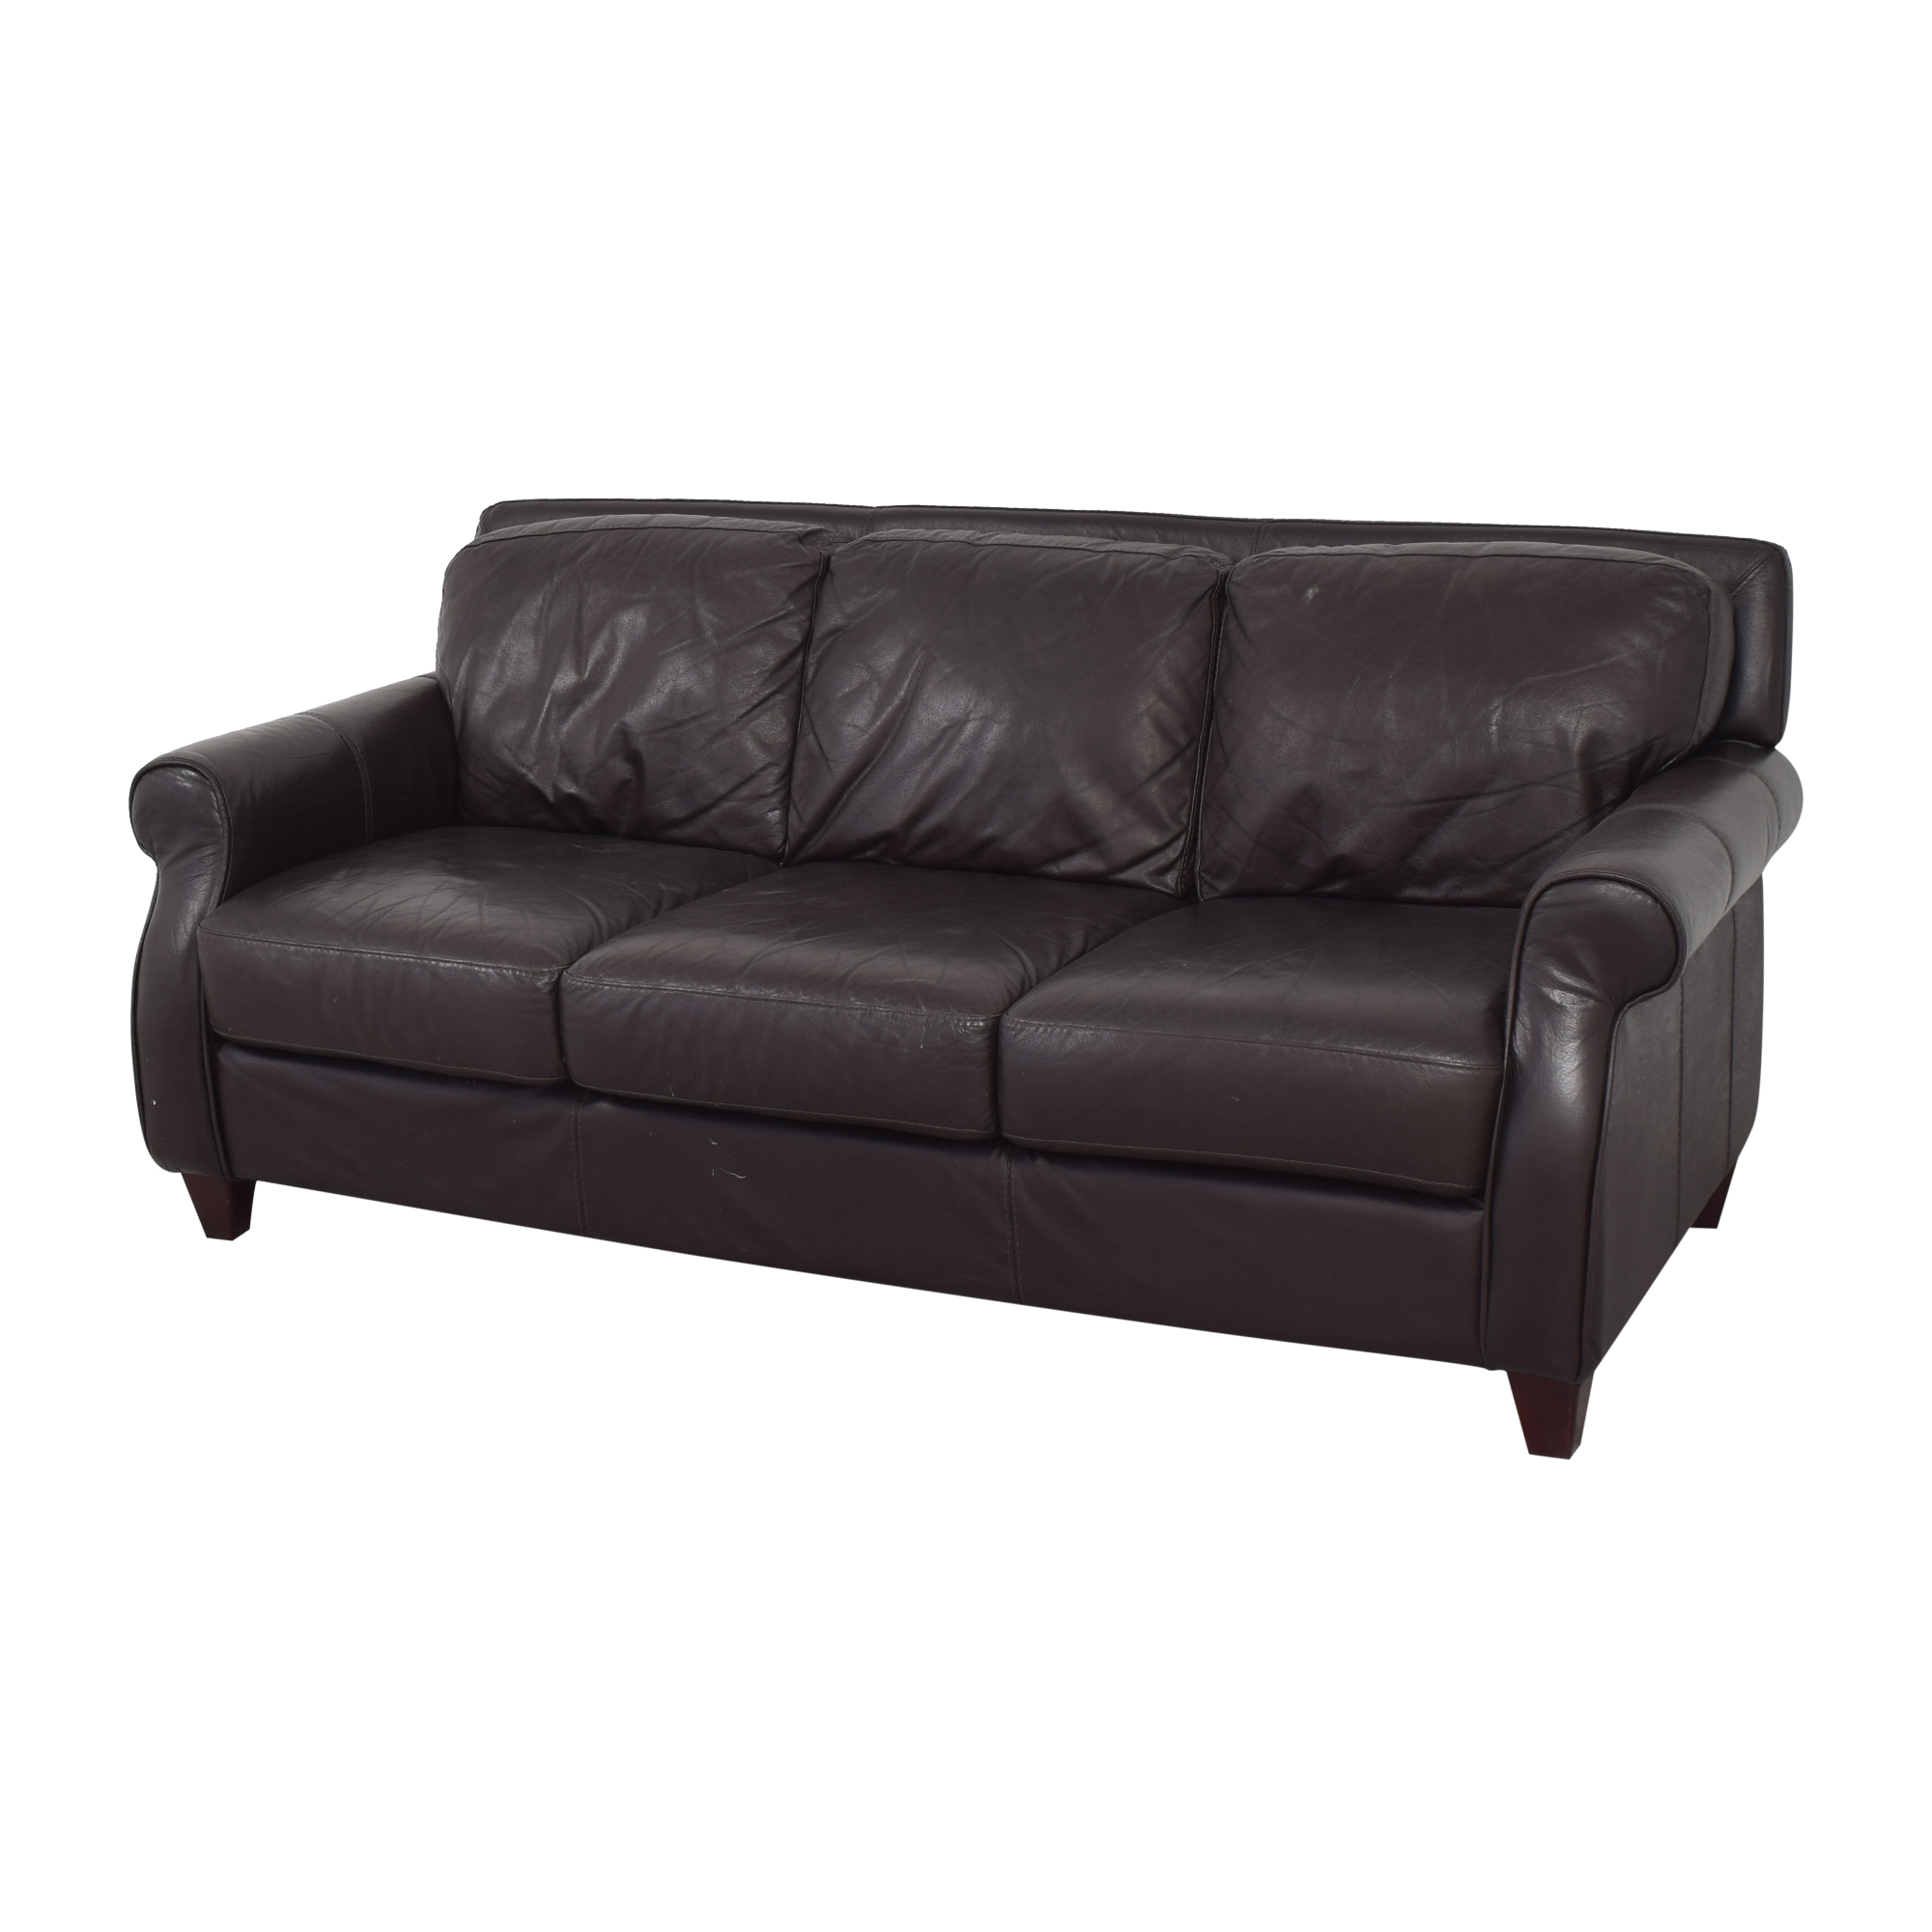 Raymour & Flanigan Raymour & Flanigan Roll Arm Sofa nj